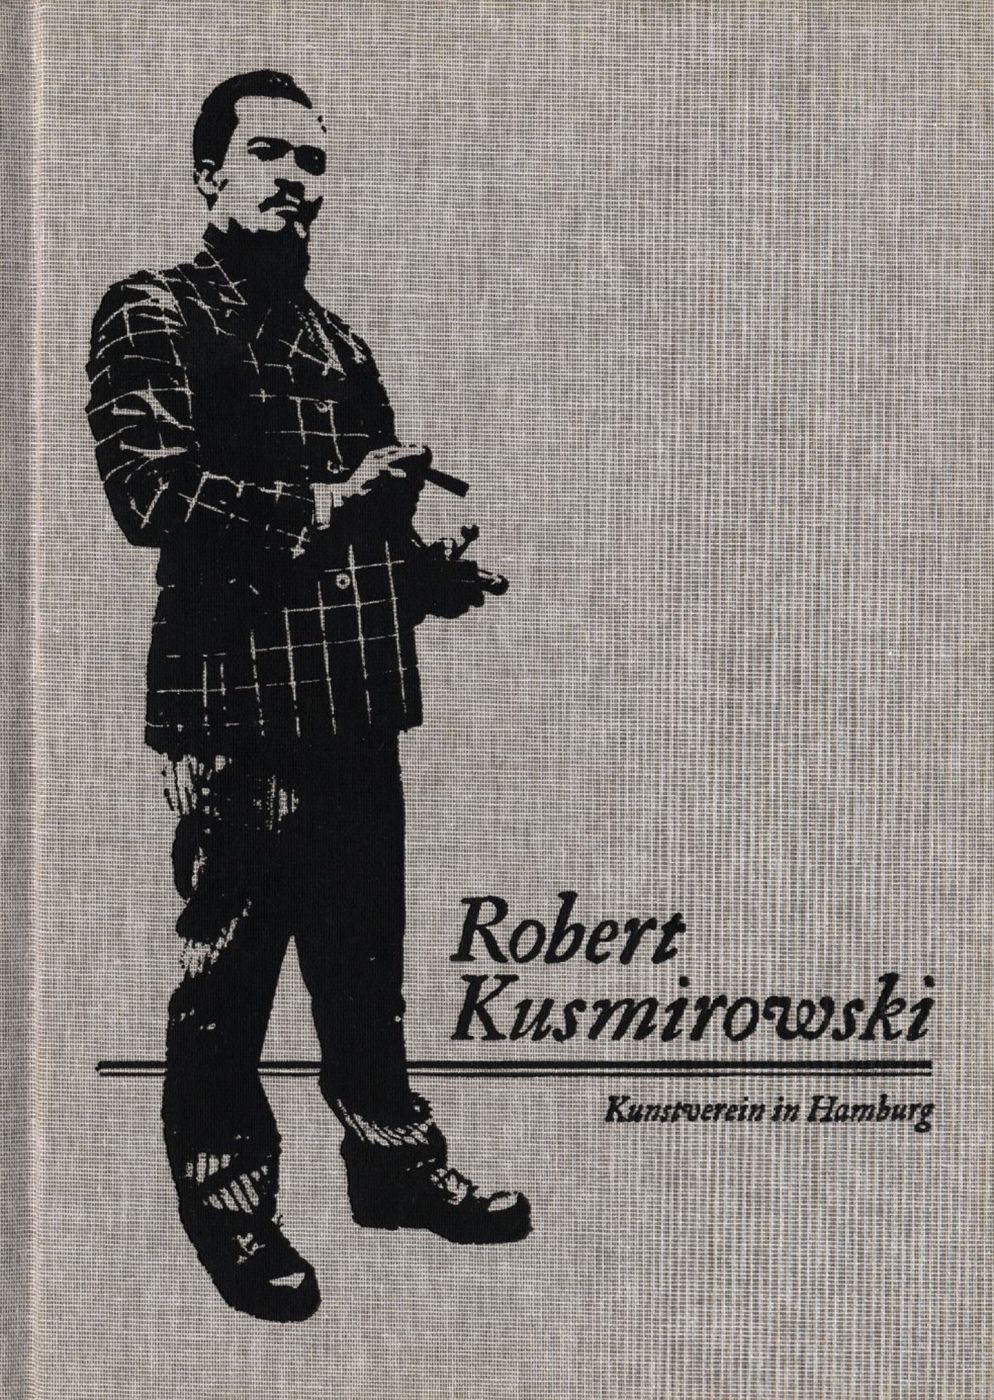 Robert Kusmirowski (Kunstverein in Hamburg)